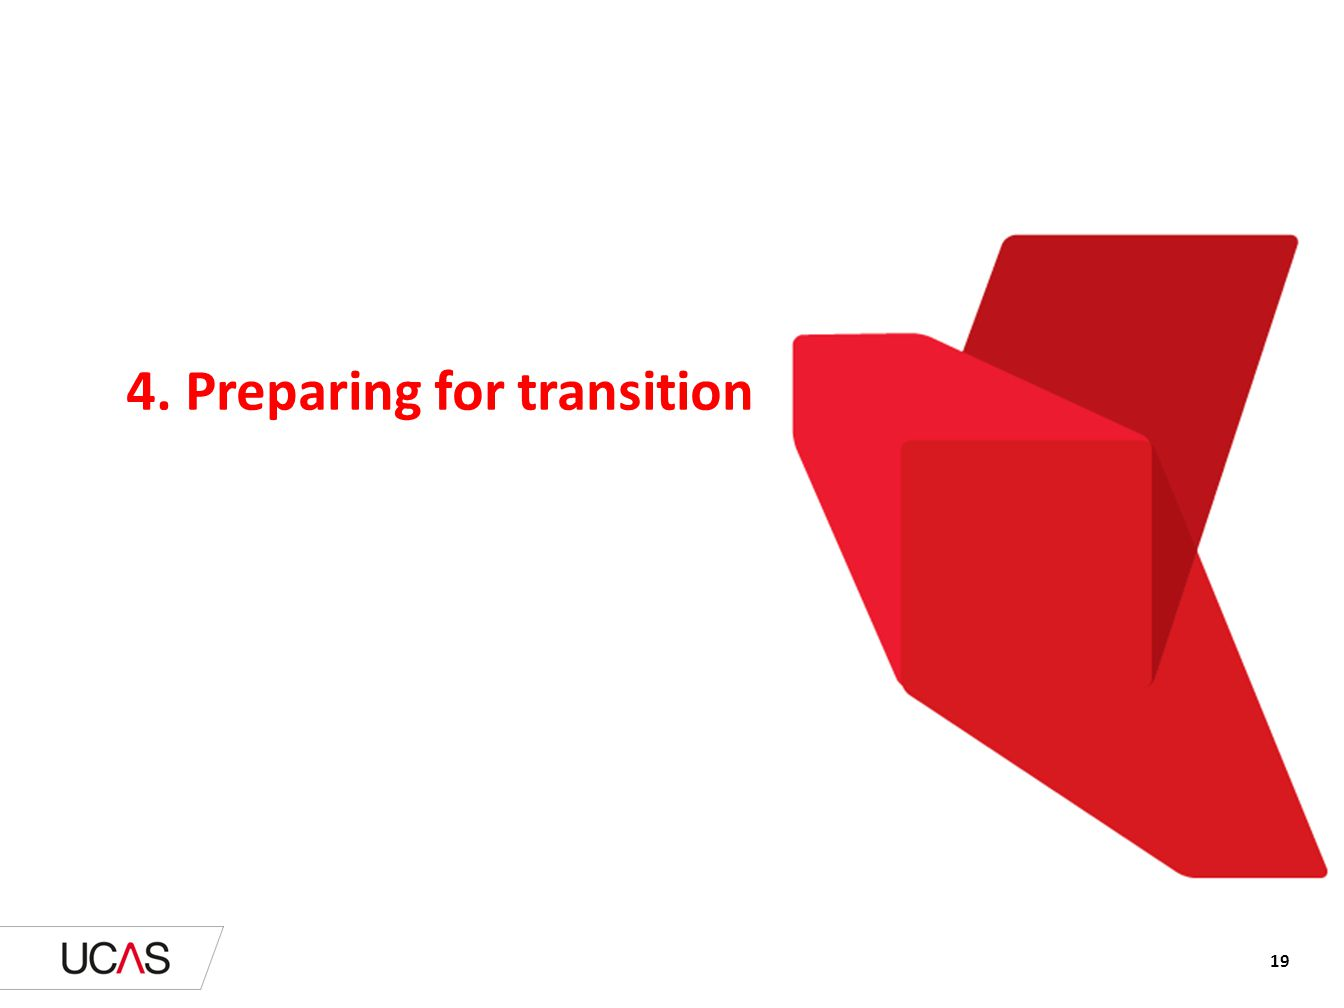 4. Preparing for transition